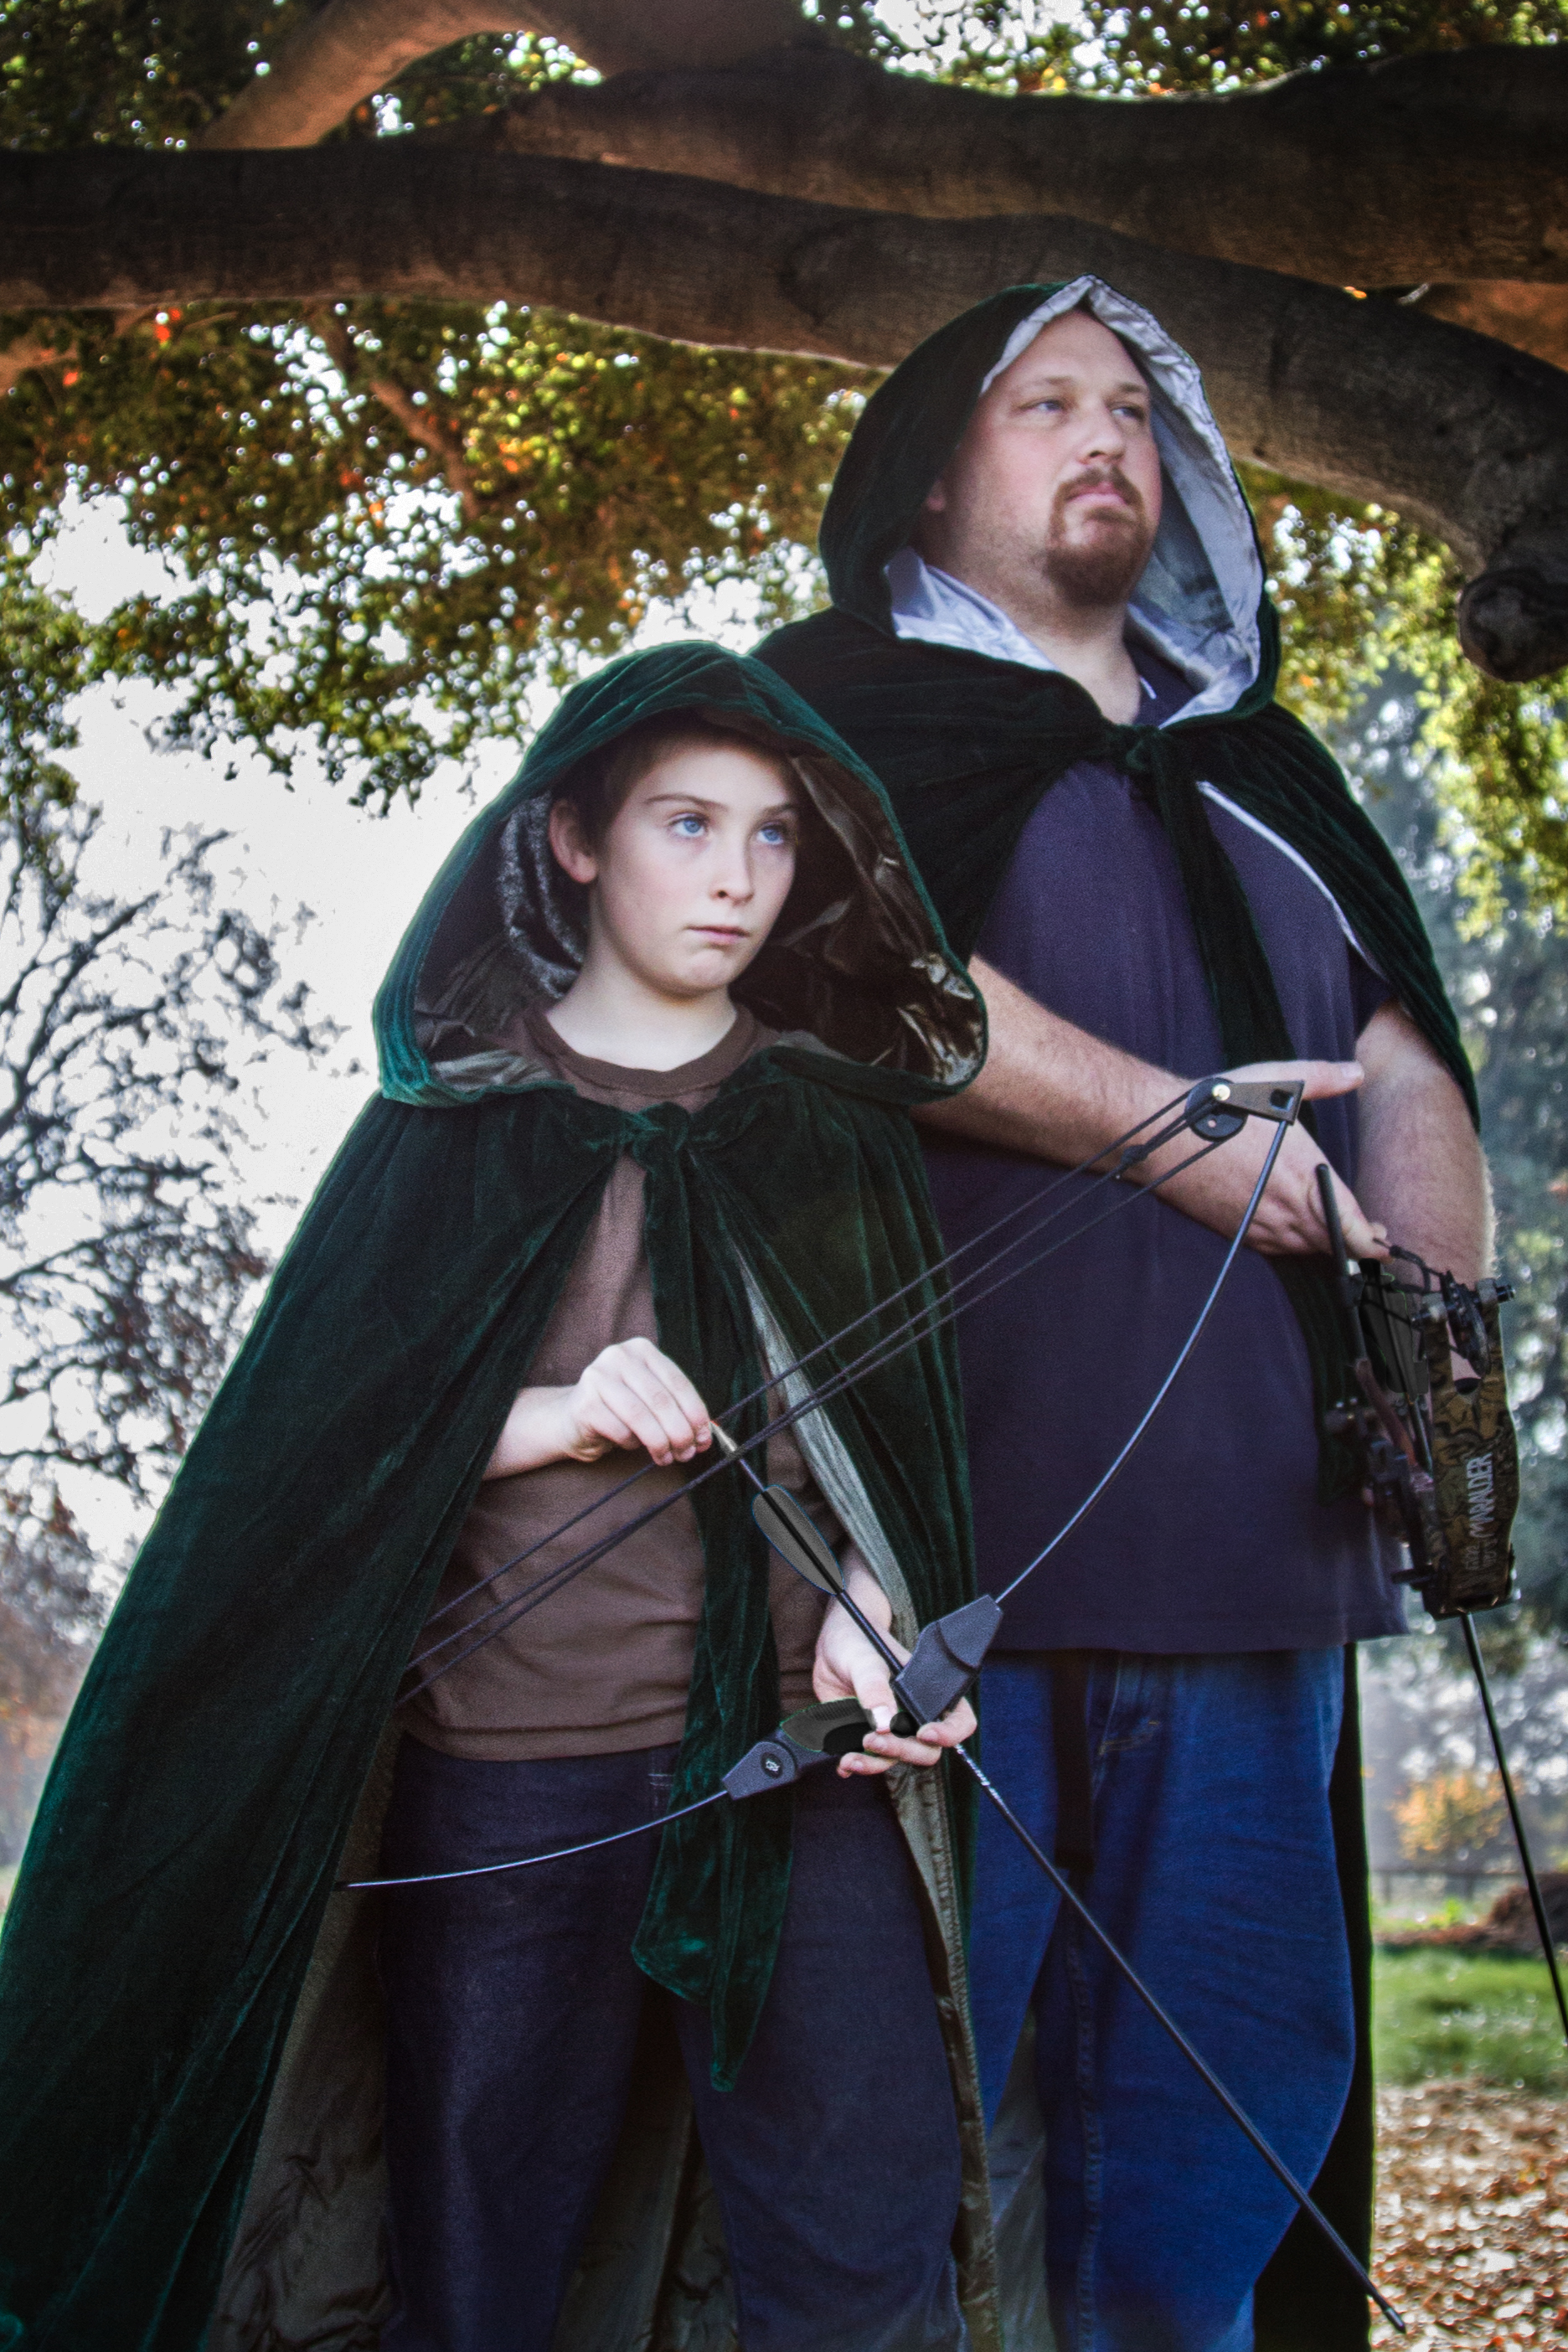 My nephew Ethan and my stepdad Alex as Robin Hood and Little John